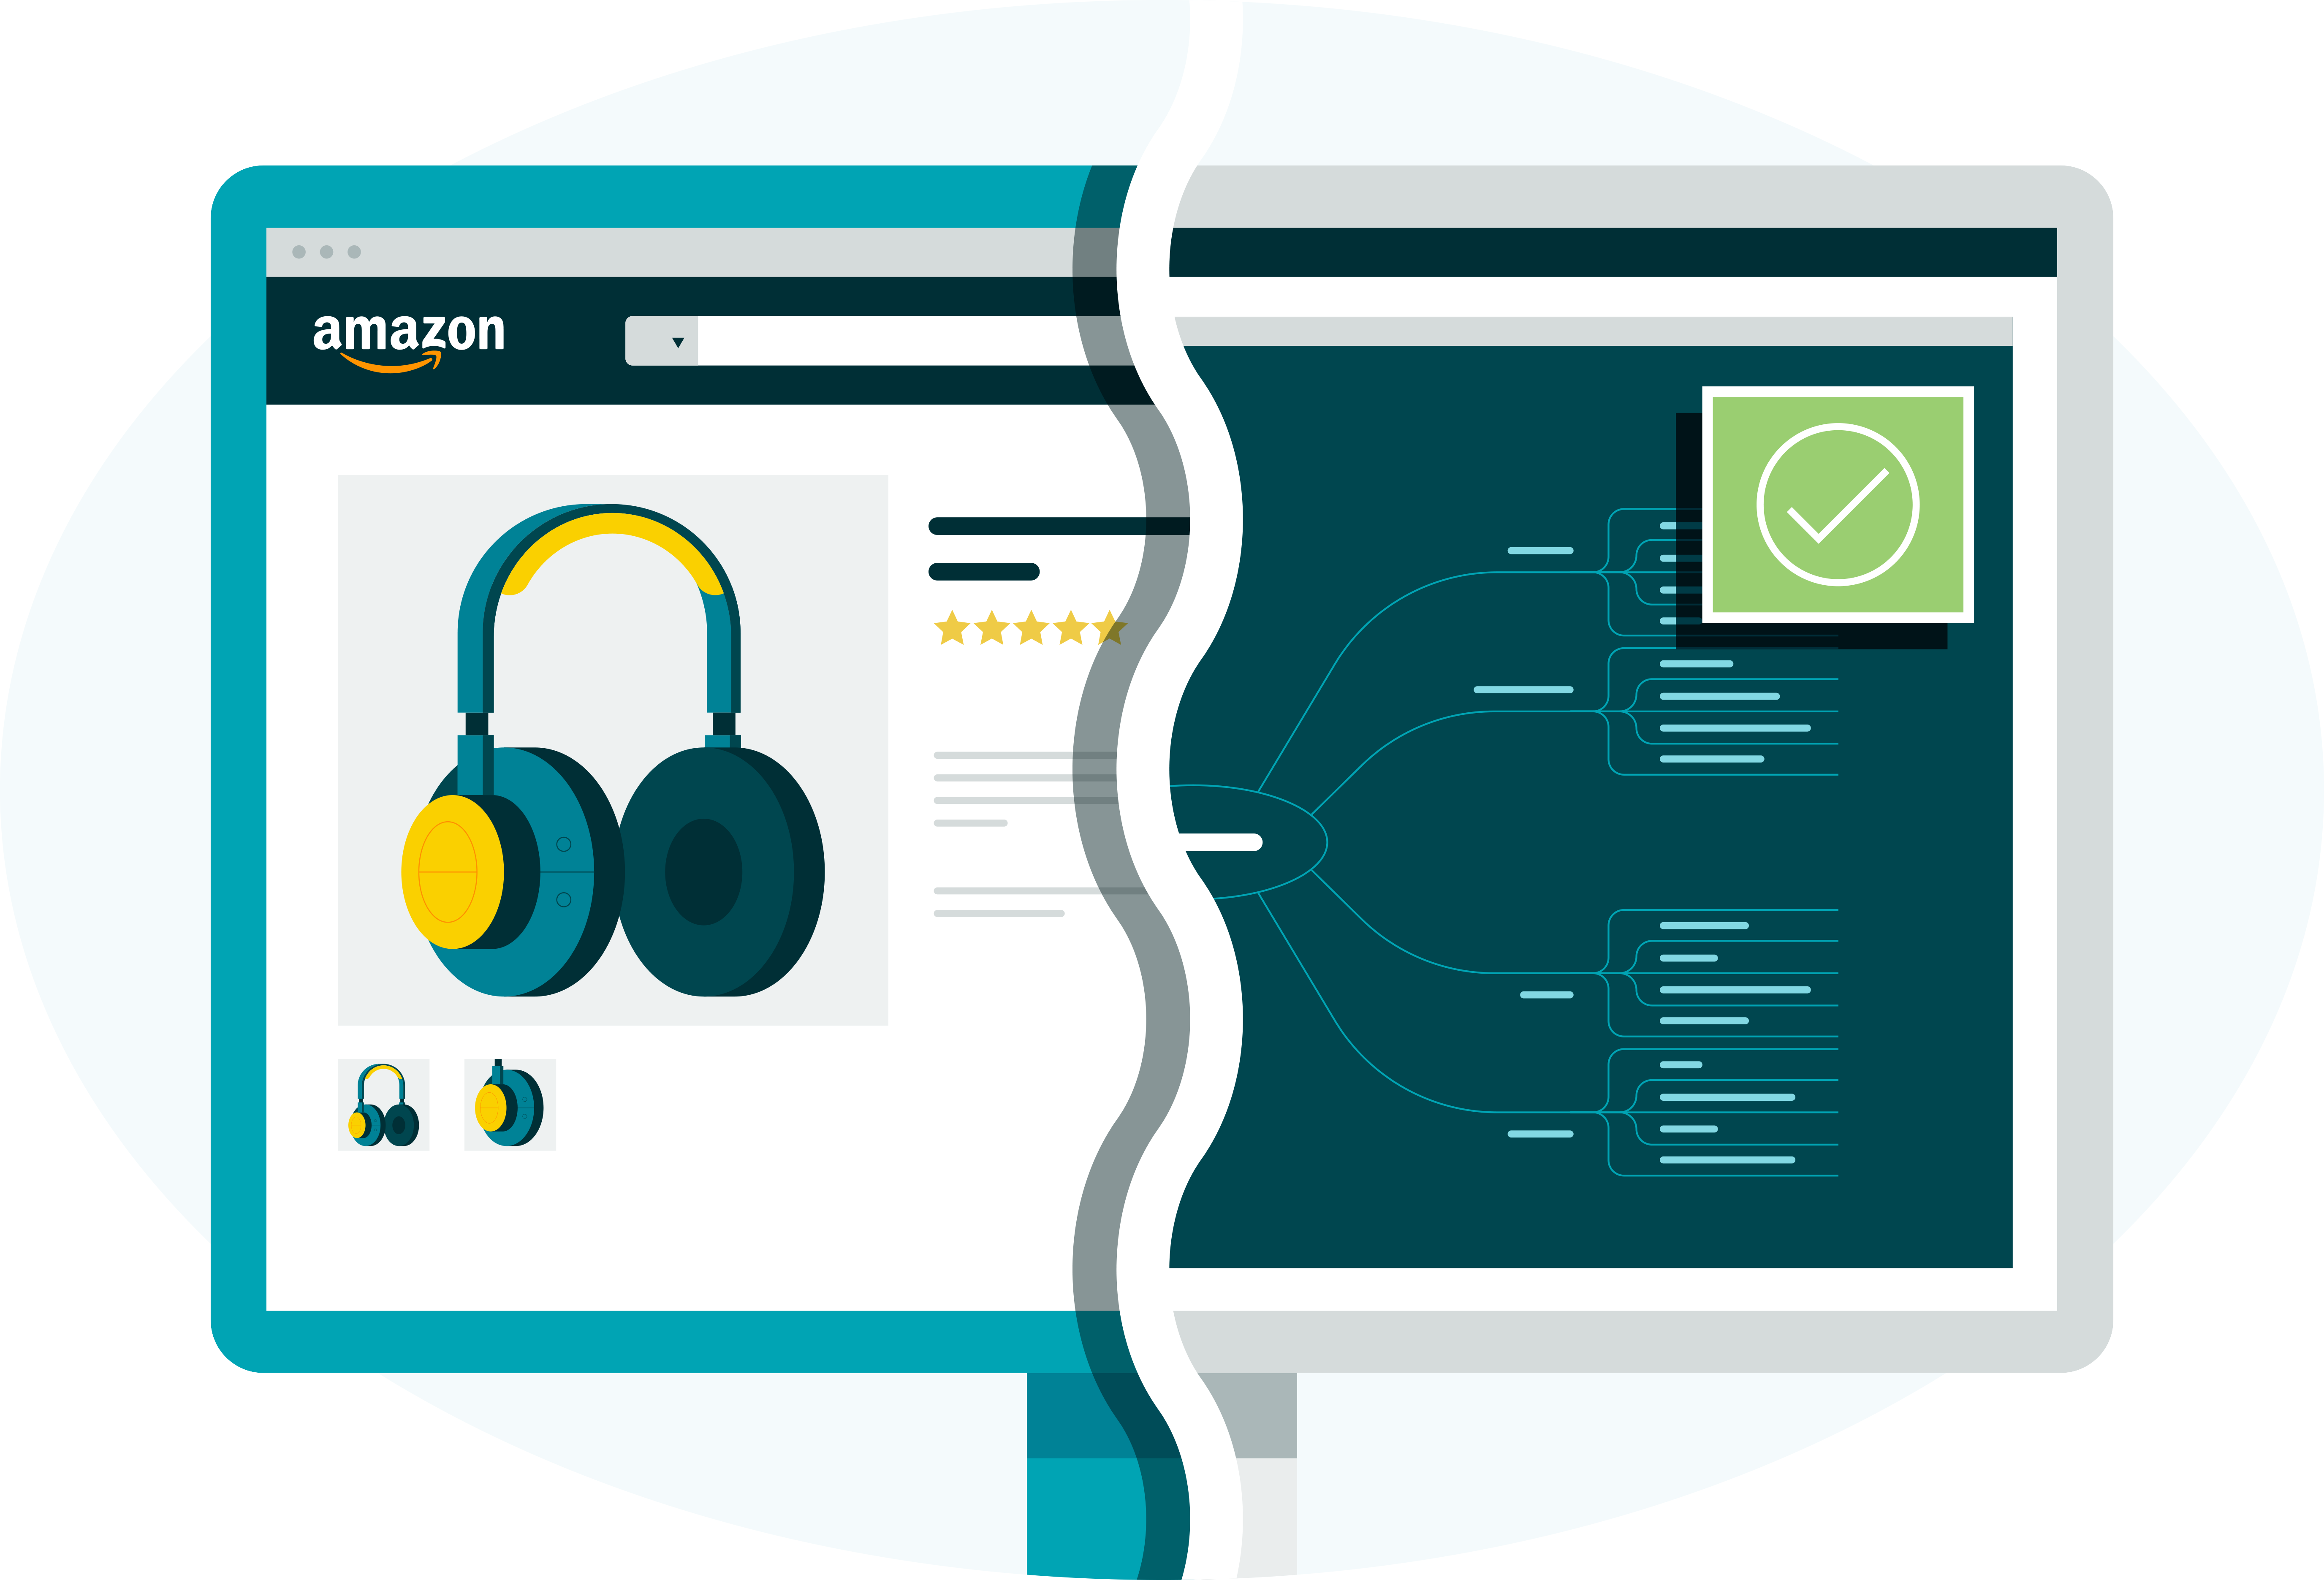 illustration of a computer representing an Amazon product page and brand protection technology